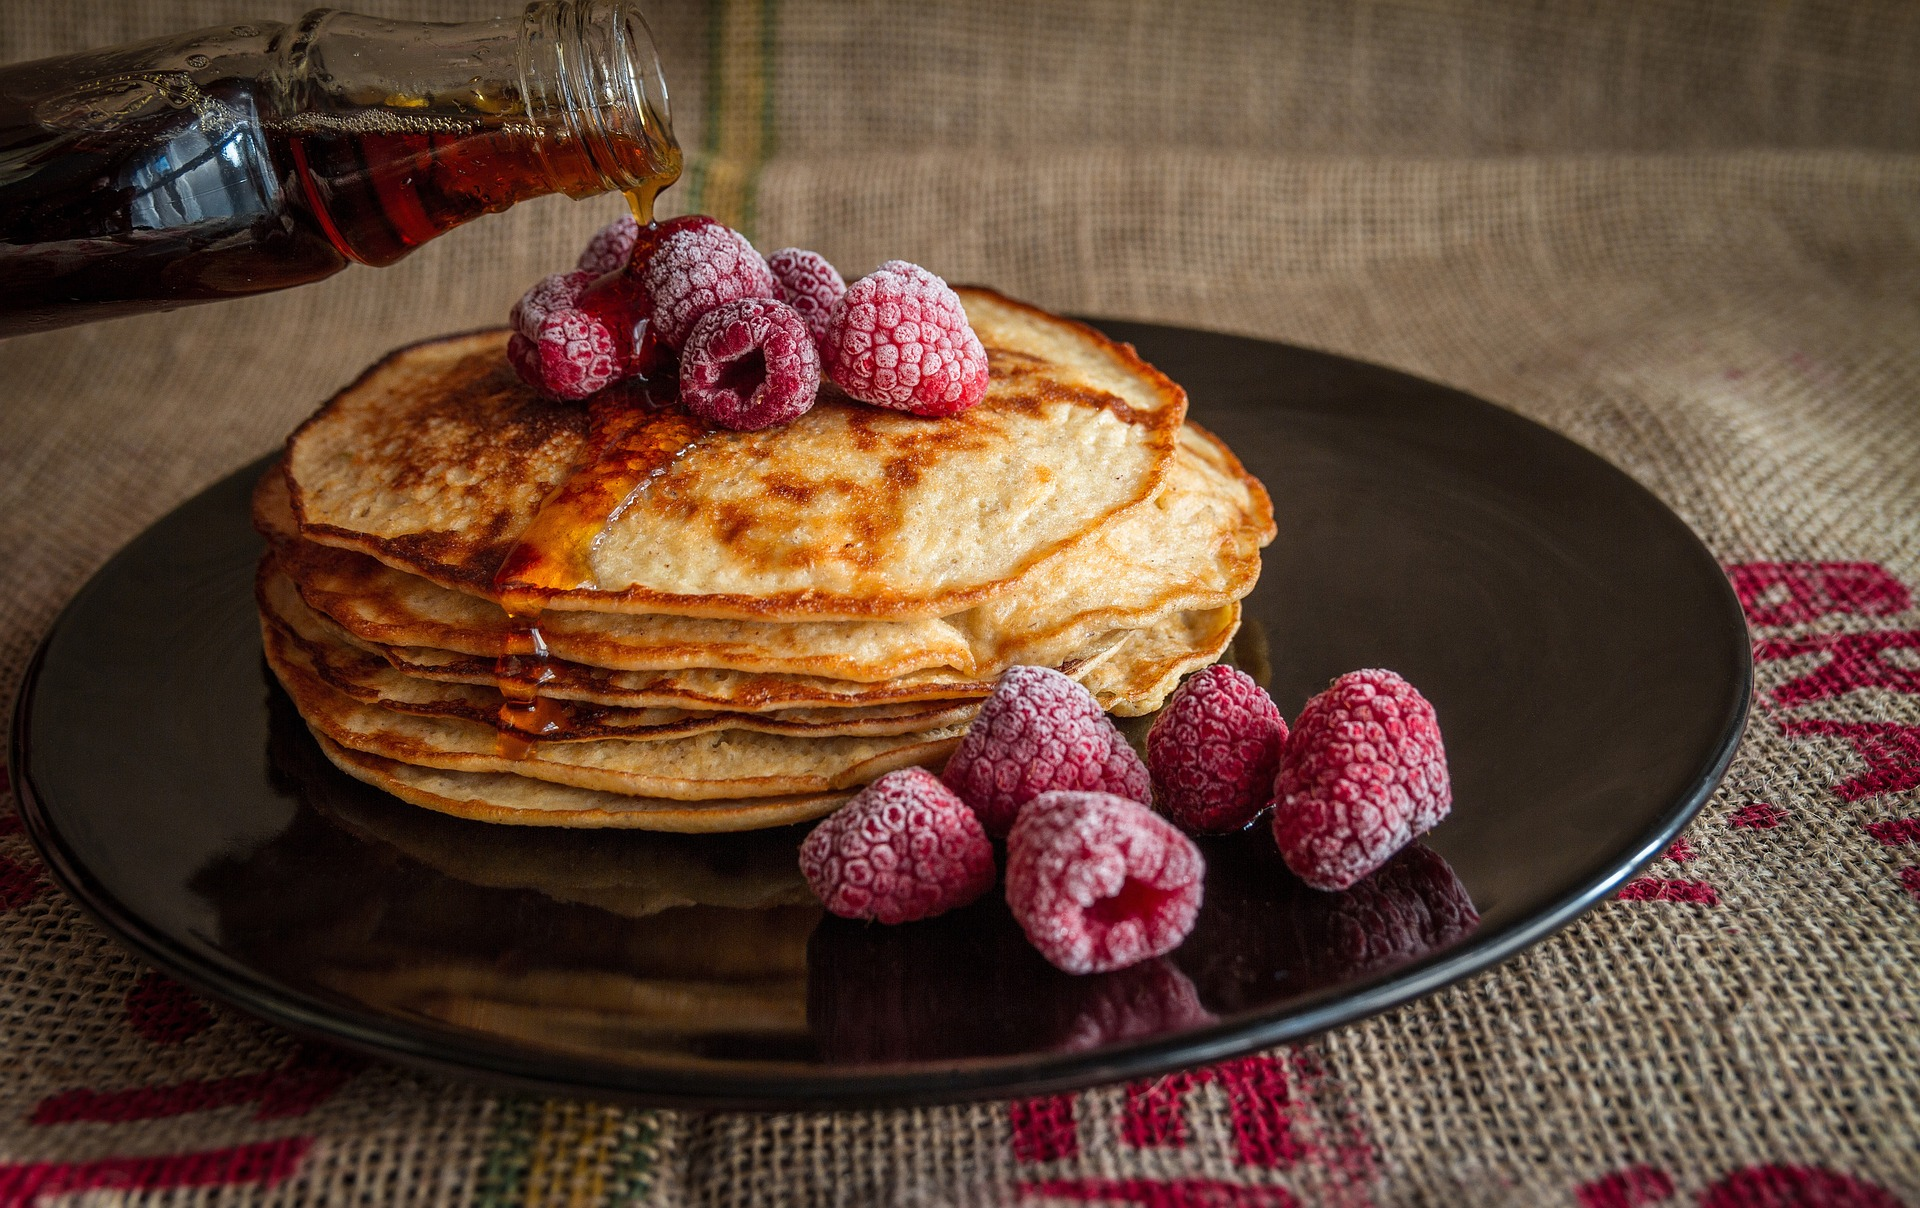 POLL: What's the best pancake topping?